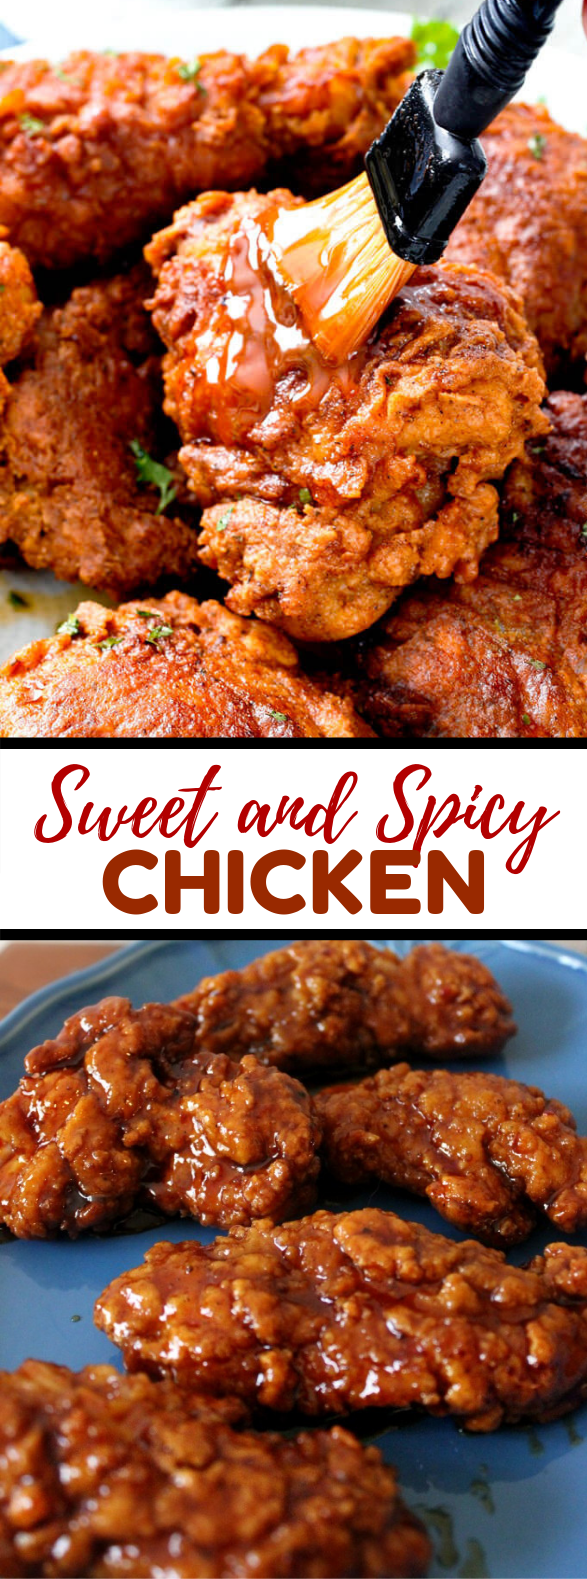 SWEET AND SPICY CHICKEN RECIPE #dinner #20minutes